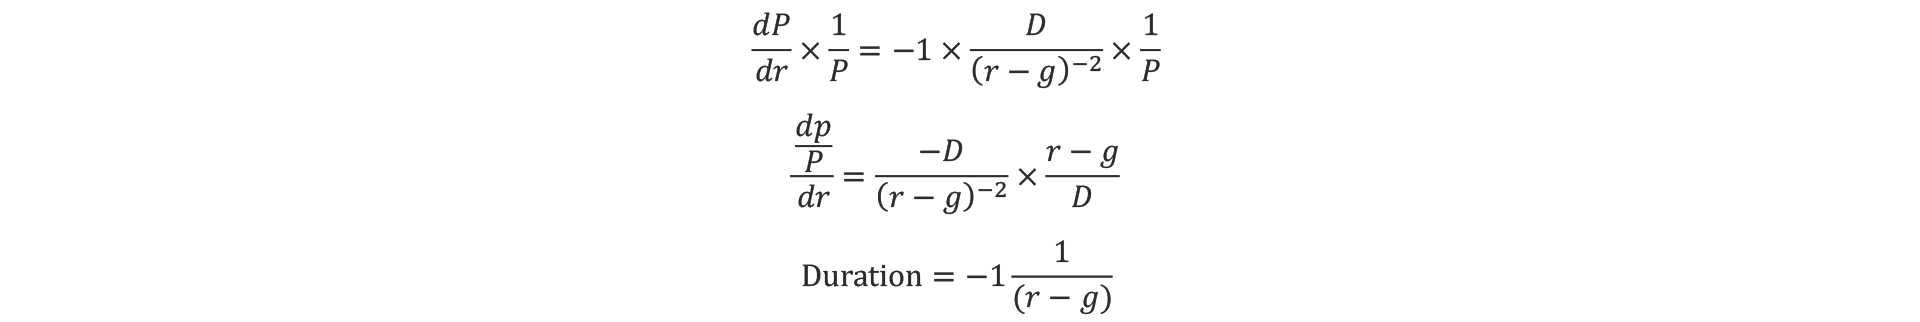 825-as-duration-dies-equities-rise-equation-2